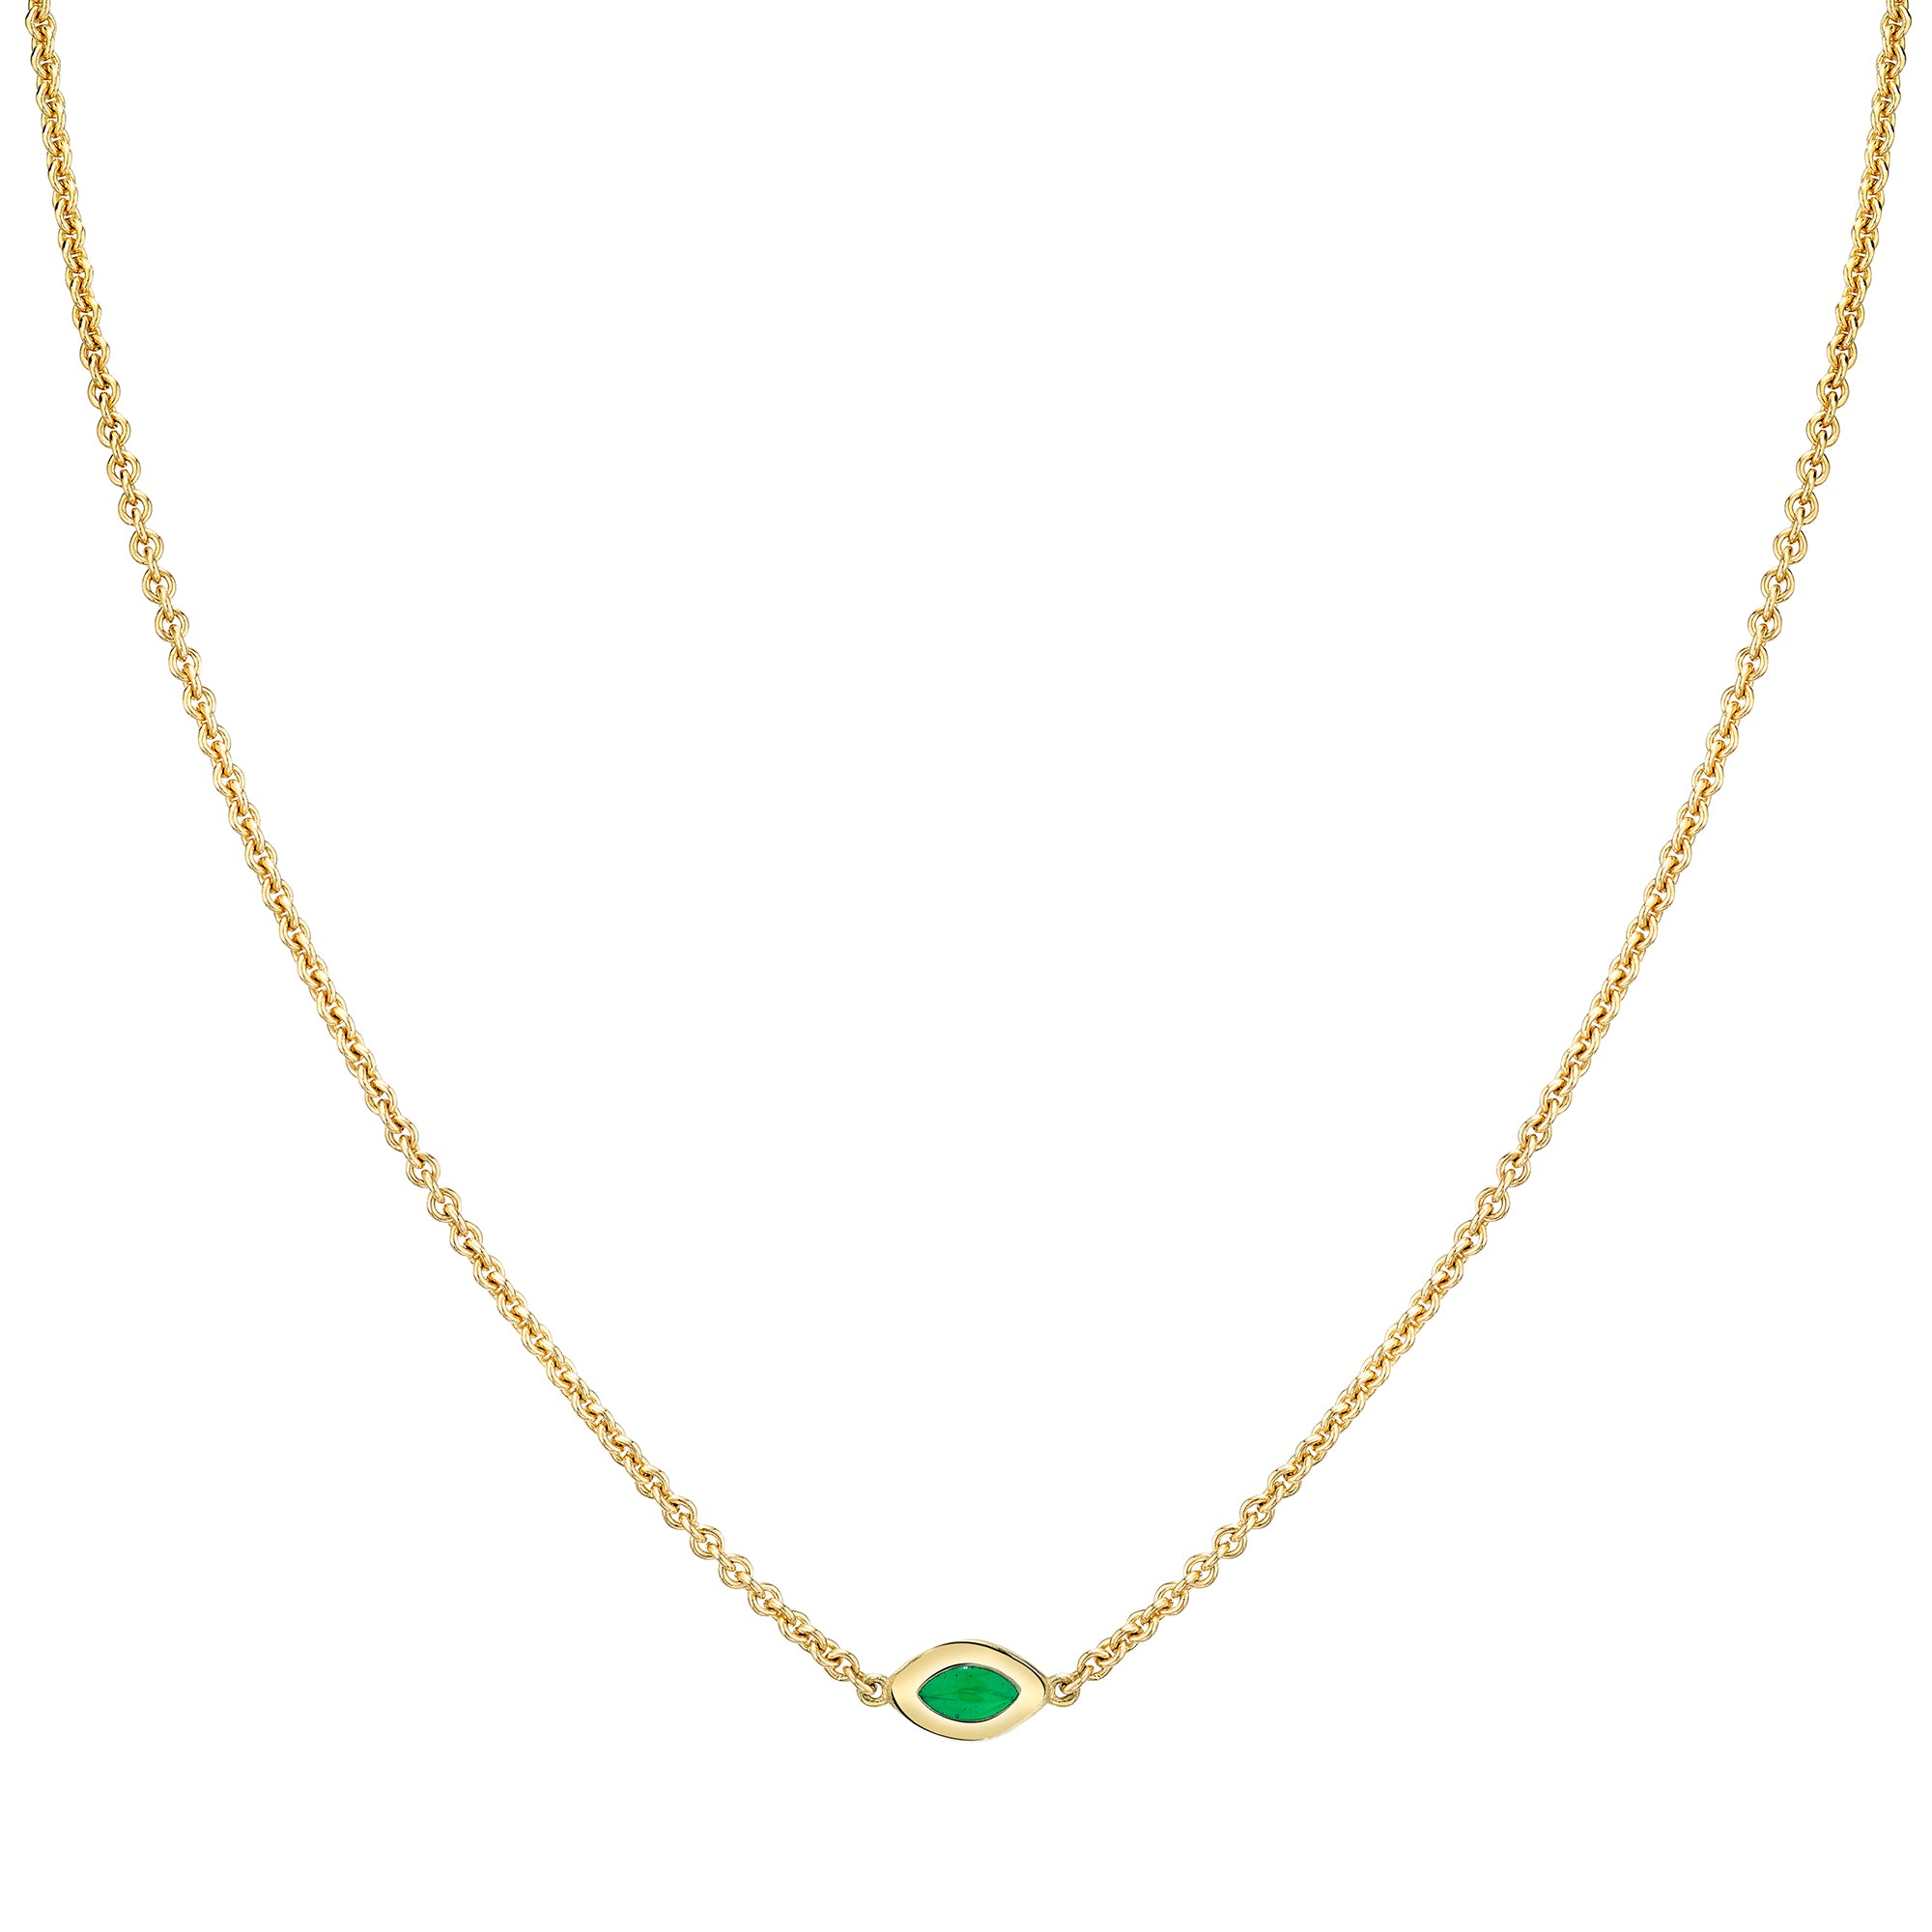 Single Link Necklace with Green Enamel - ANDY LIF Jewelry - Necklaces | Broken English Jewelry